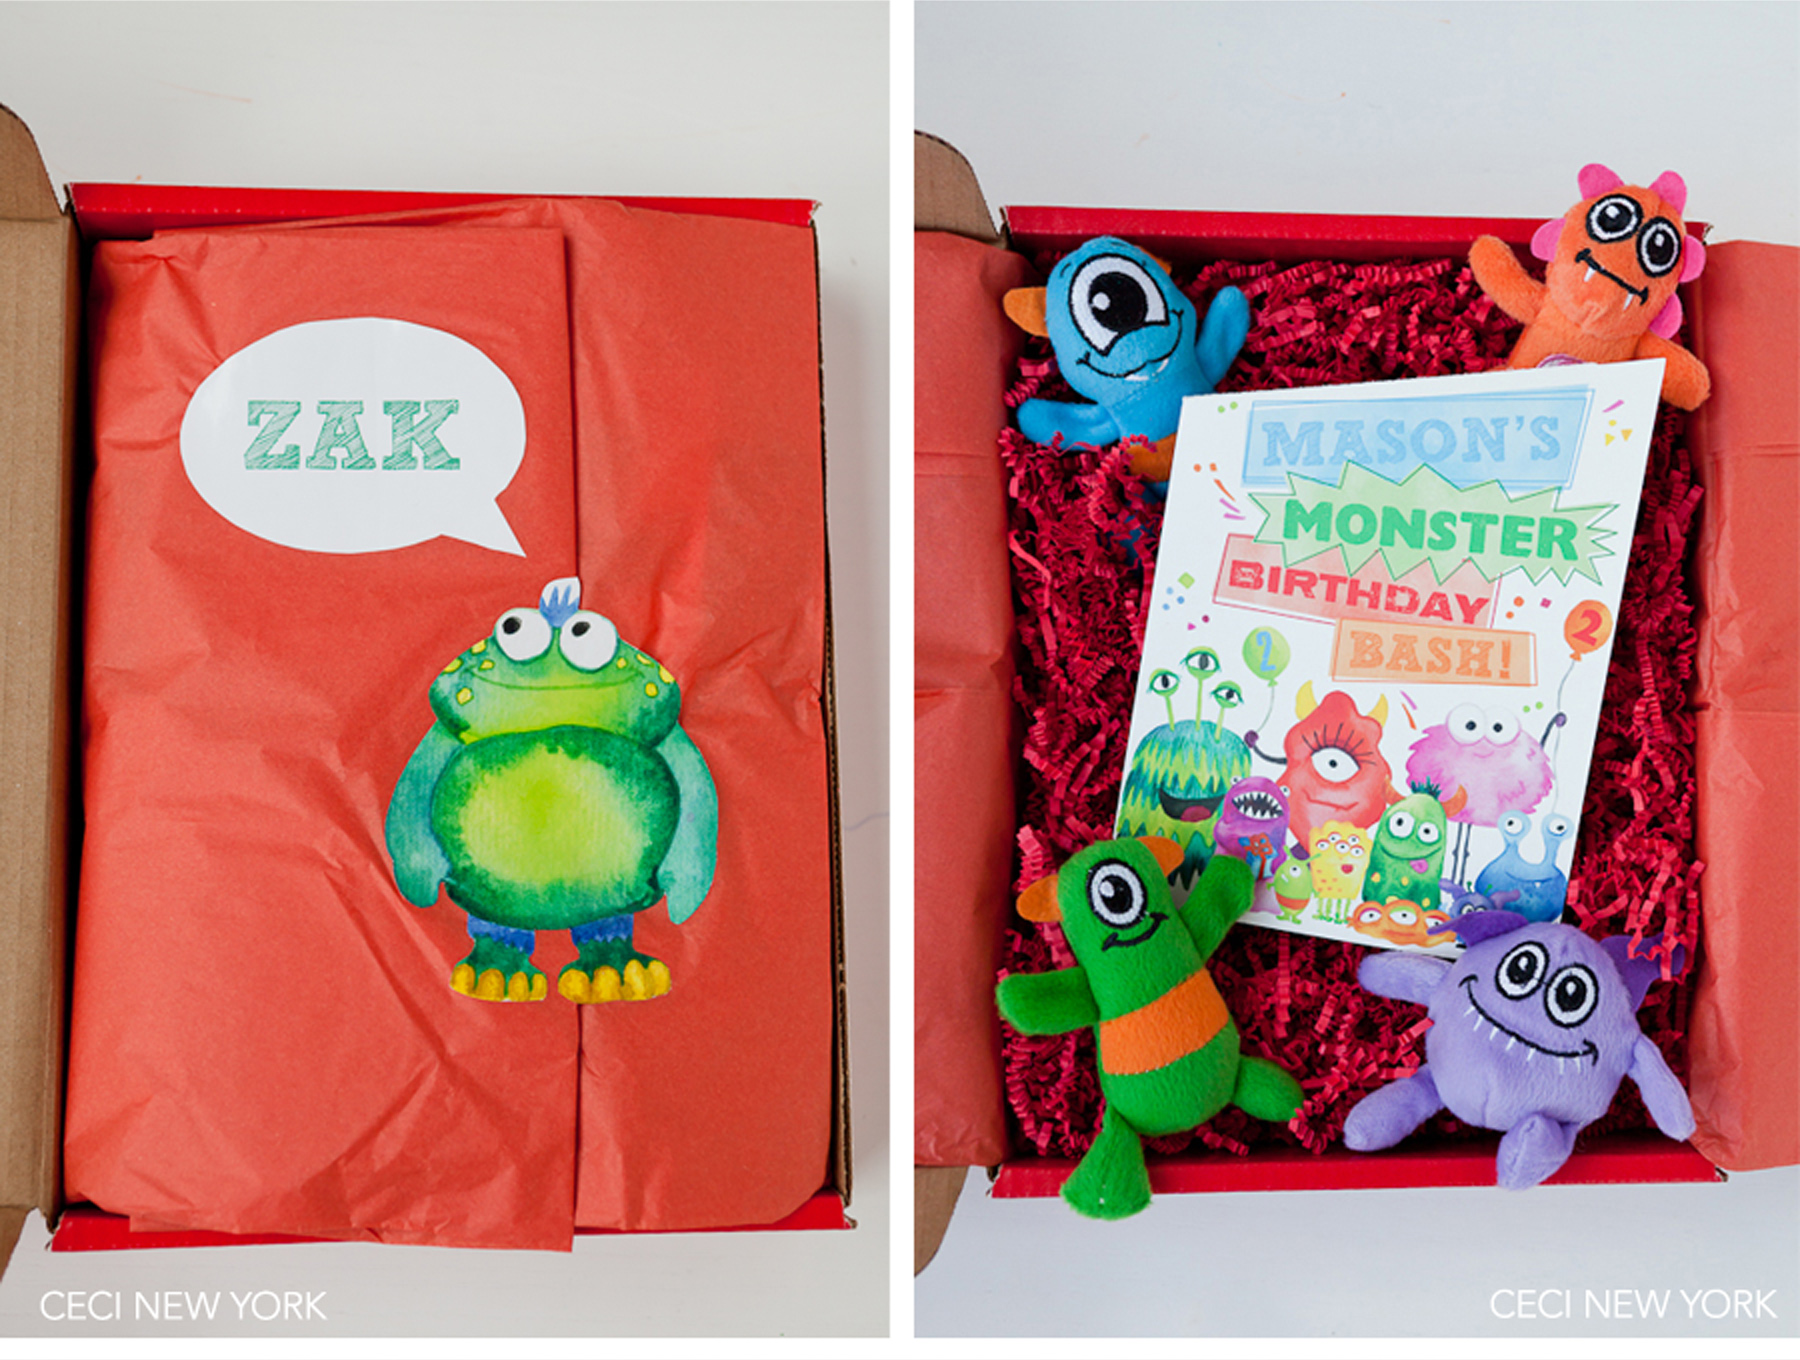 Luxury Wedding Invitations by Ceci New York - Our Muse - Monster Themed Kid's Birthday Party - Get inspired for your child's next birthday party with these fun ideas from Ceci Johnson of Ceci New York! - Ceci New York Luxury Wedding Invitations - ceci johnson, birthday party, monster theme